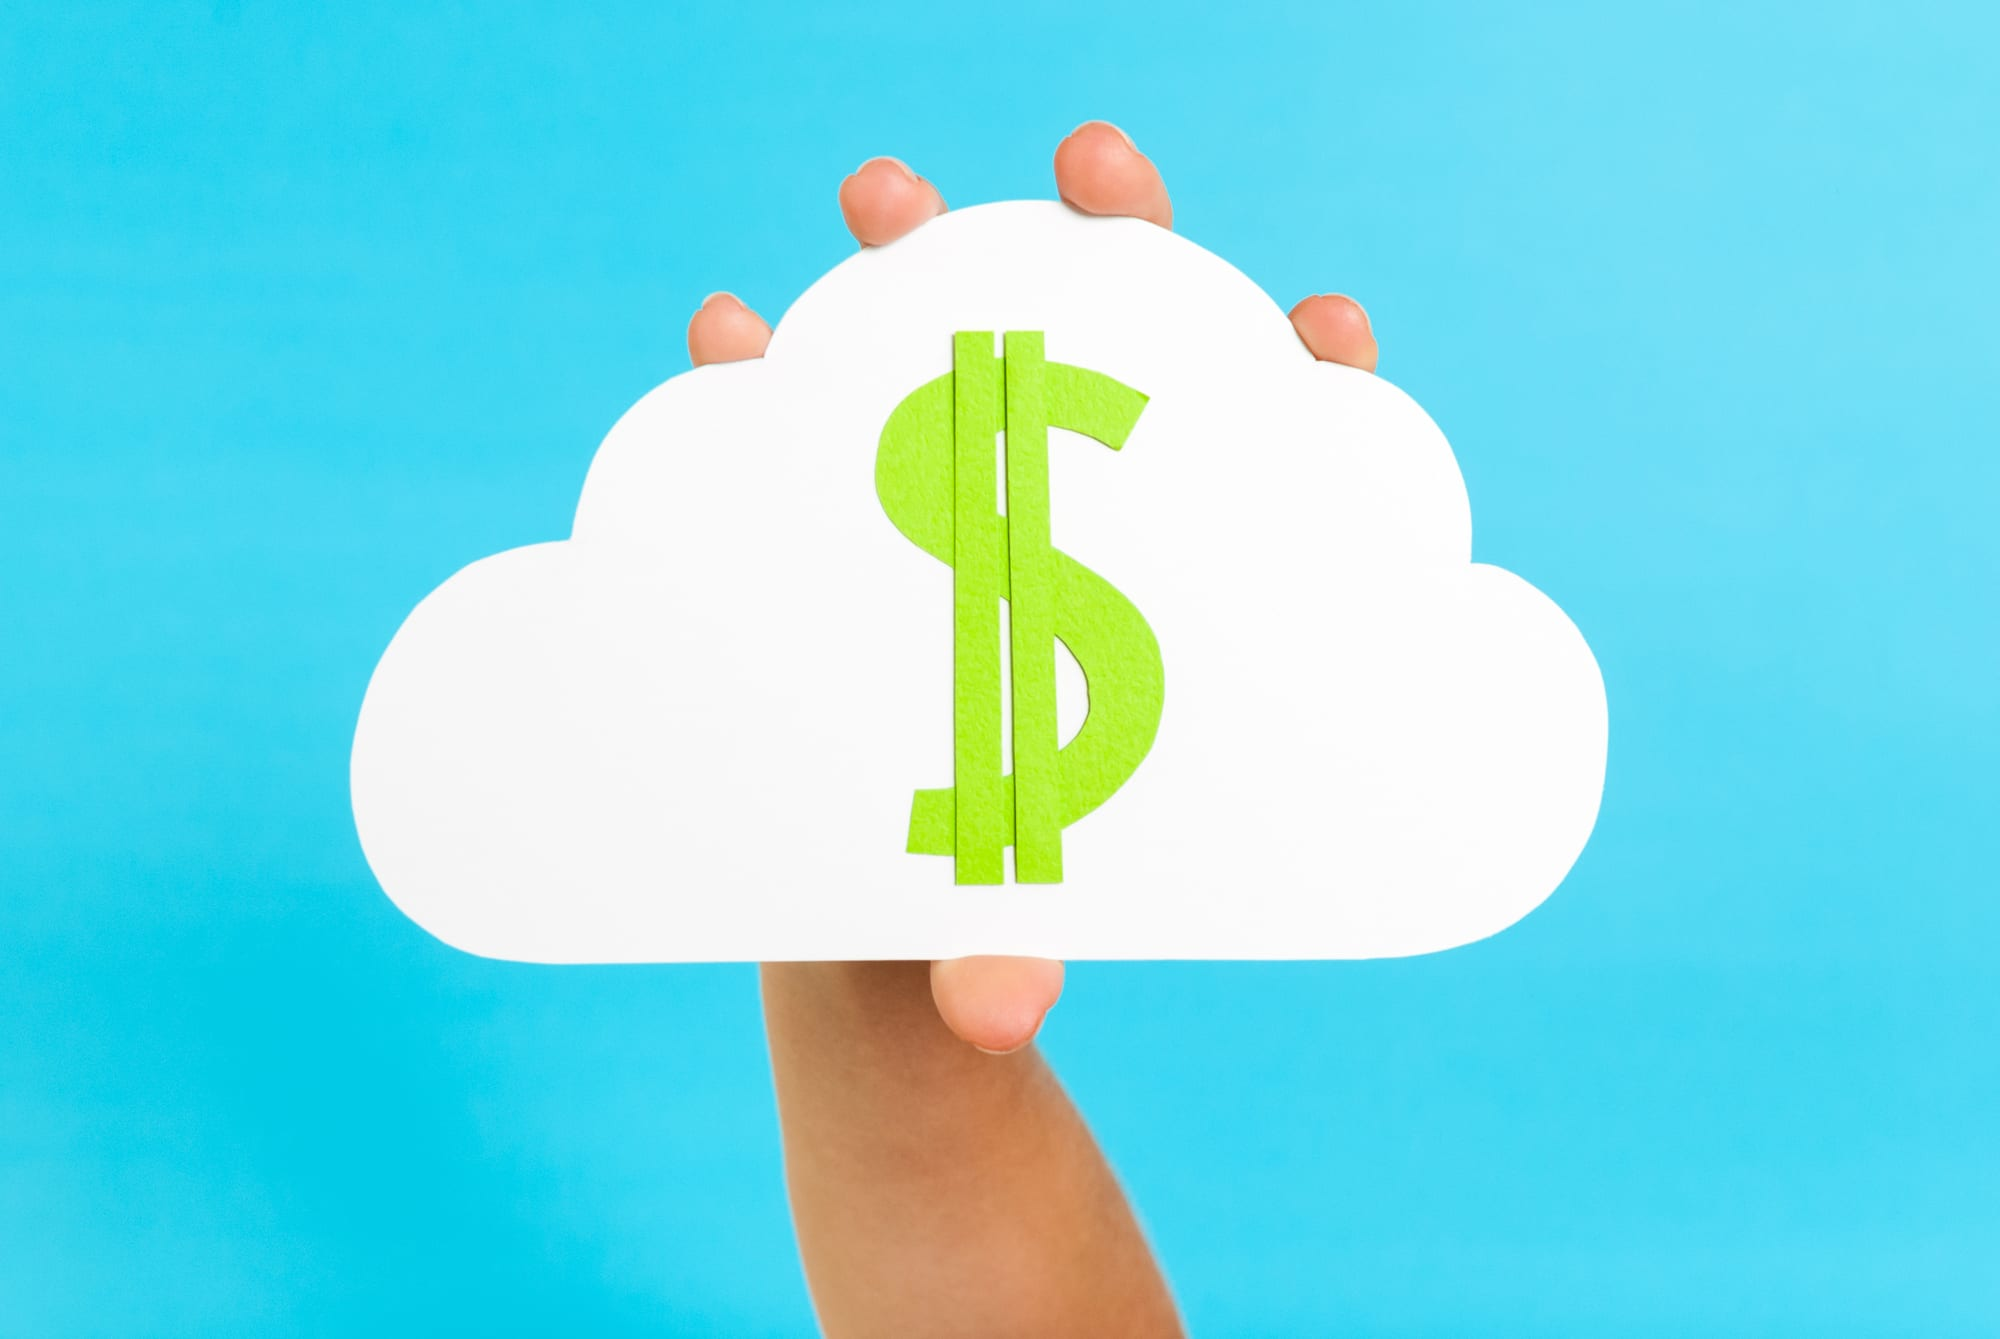 Hand holding a cloud with a dollar sign symbolizing costs related to cloud computing.